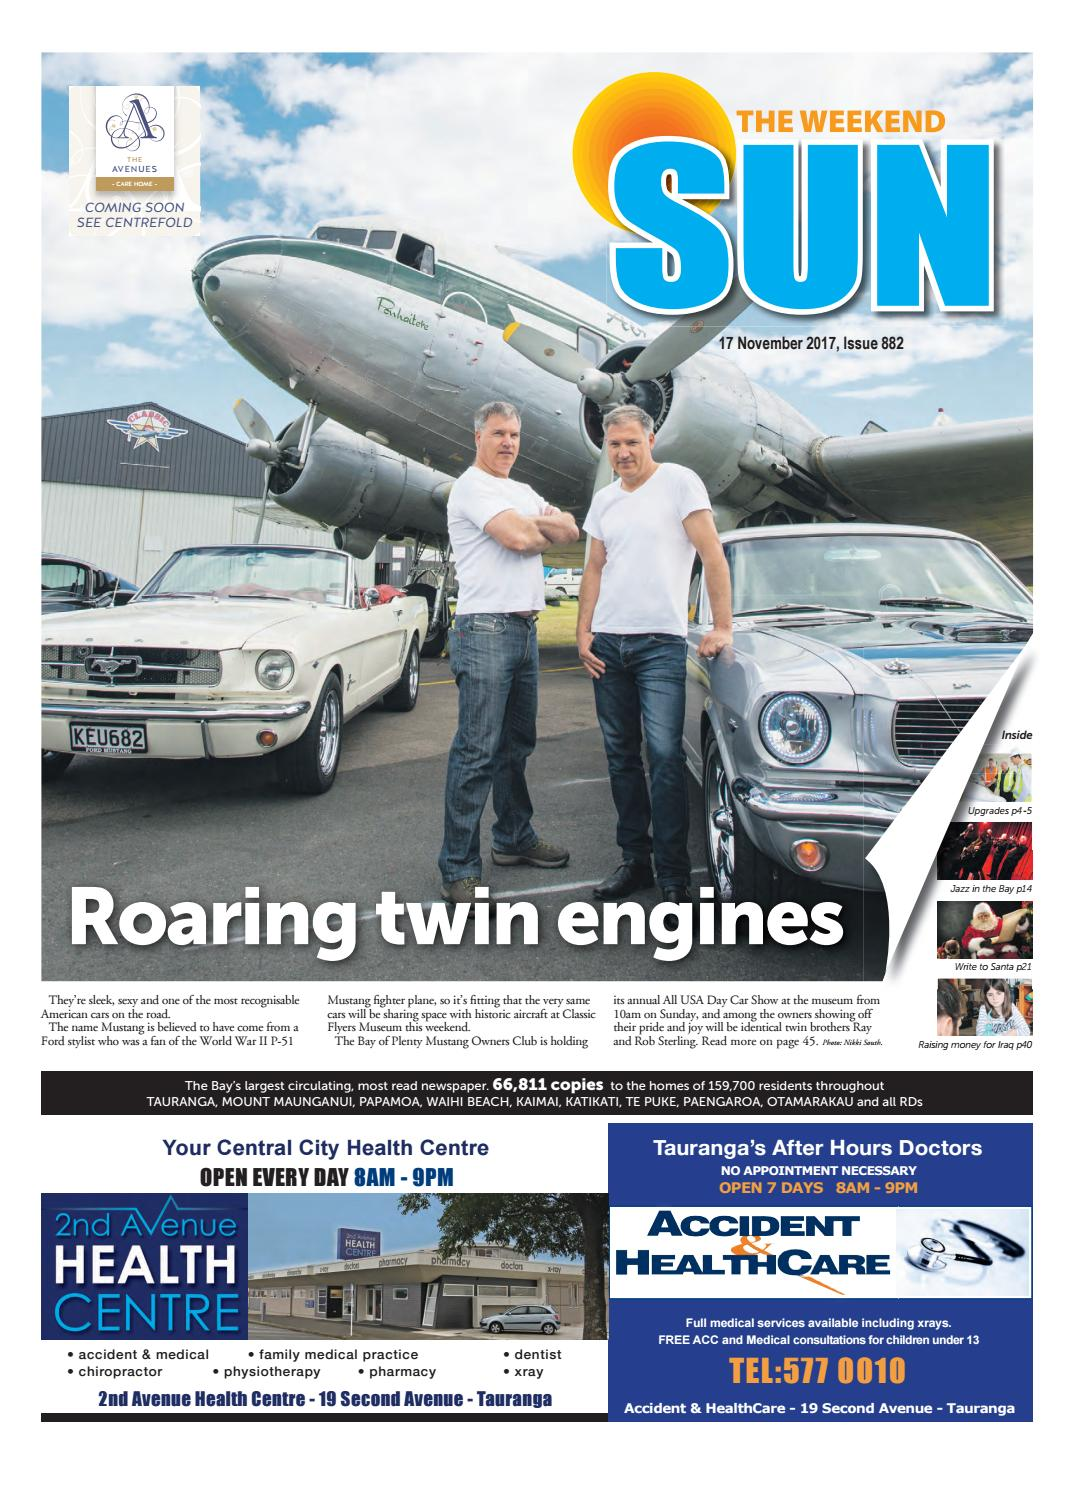 The Weekend Sun 17 November 2017 By SunLive